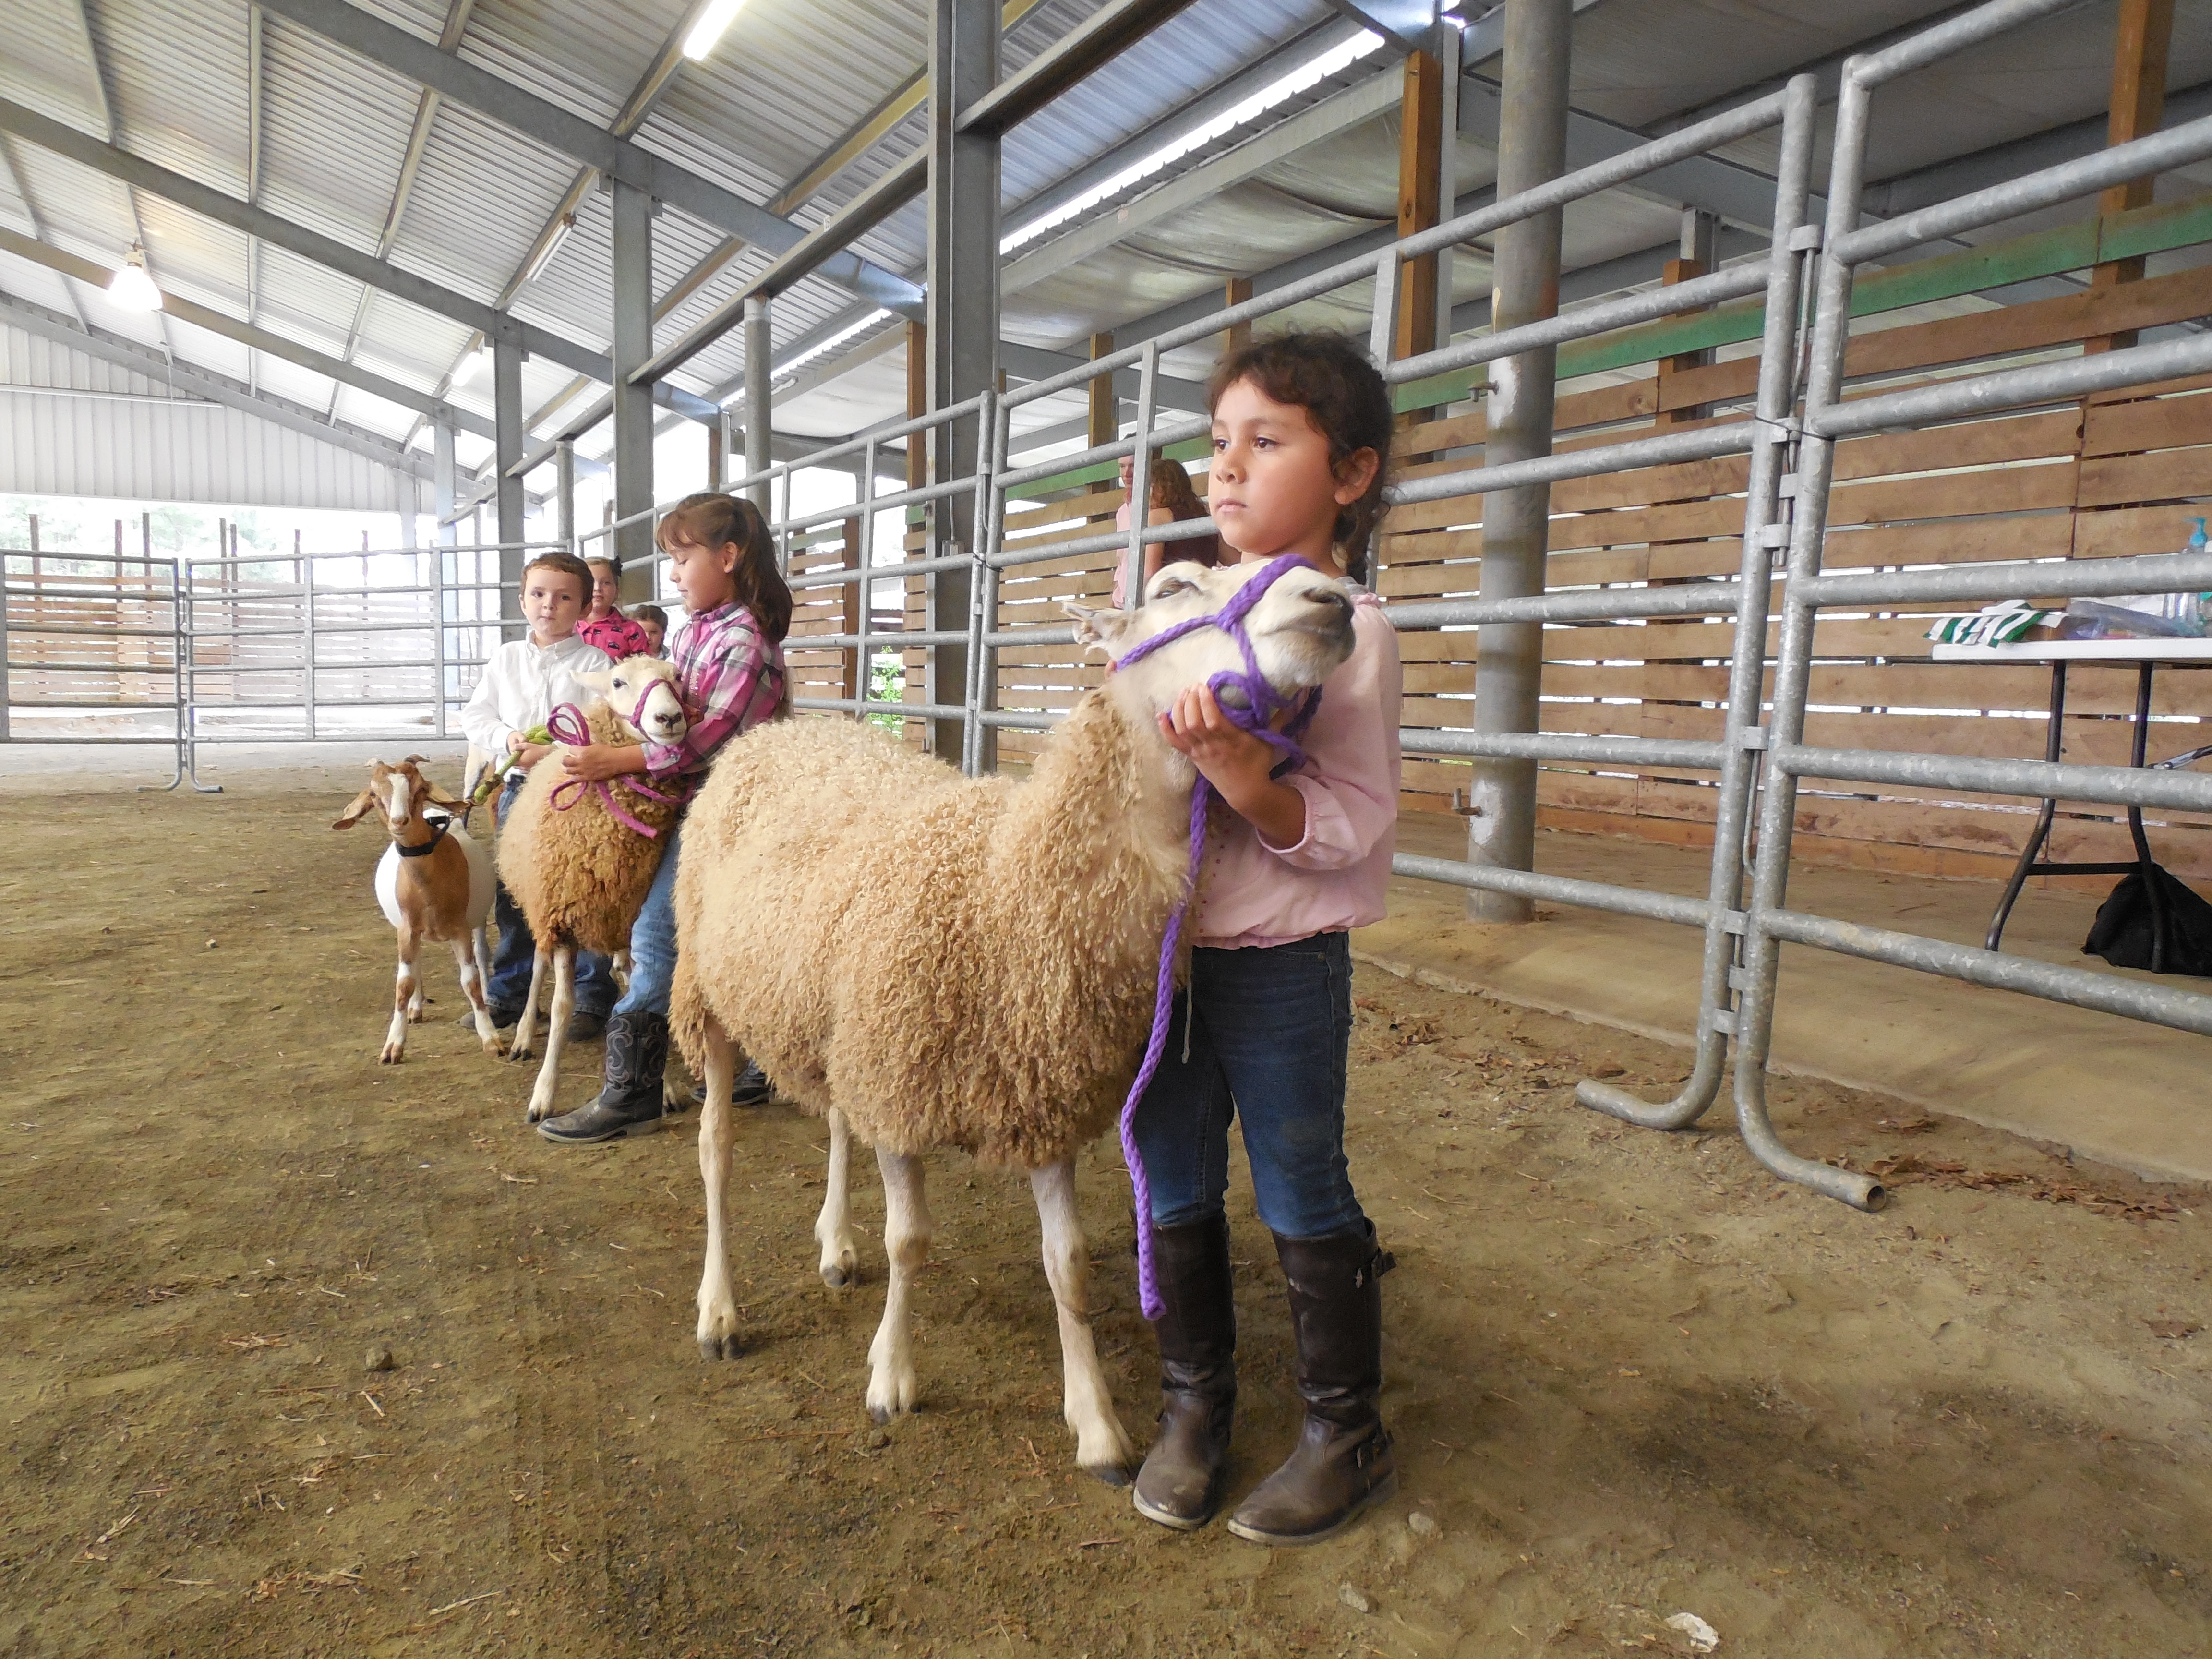 Image of children with livestock